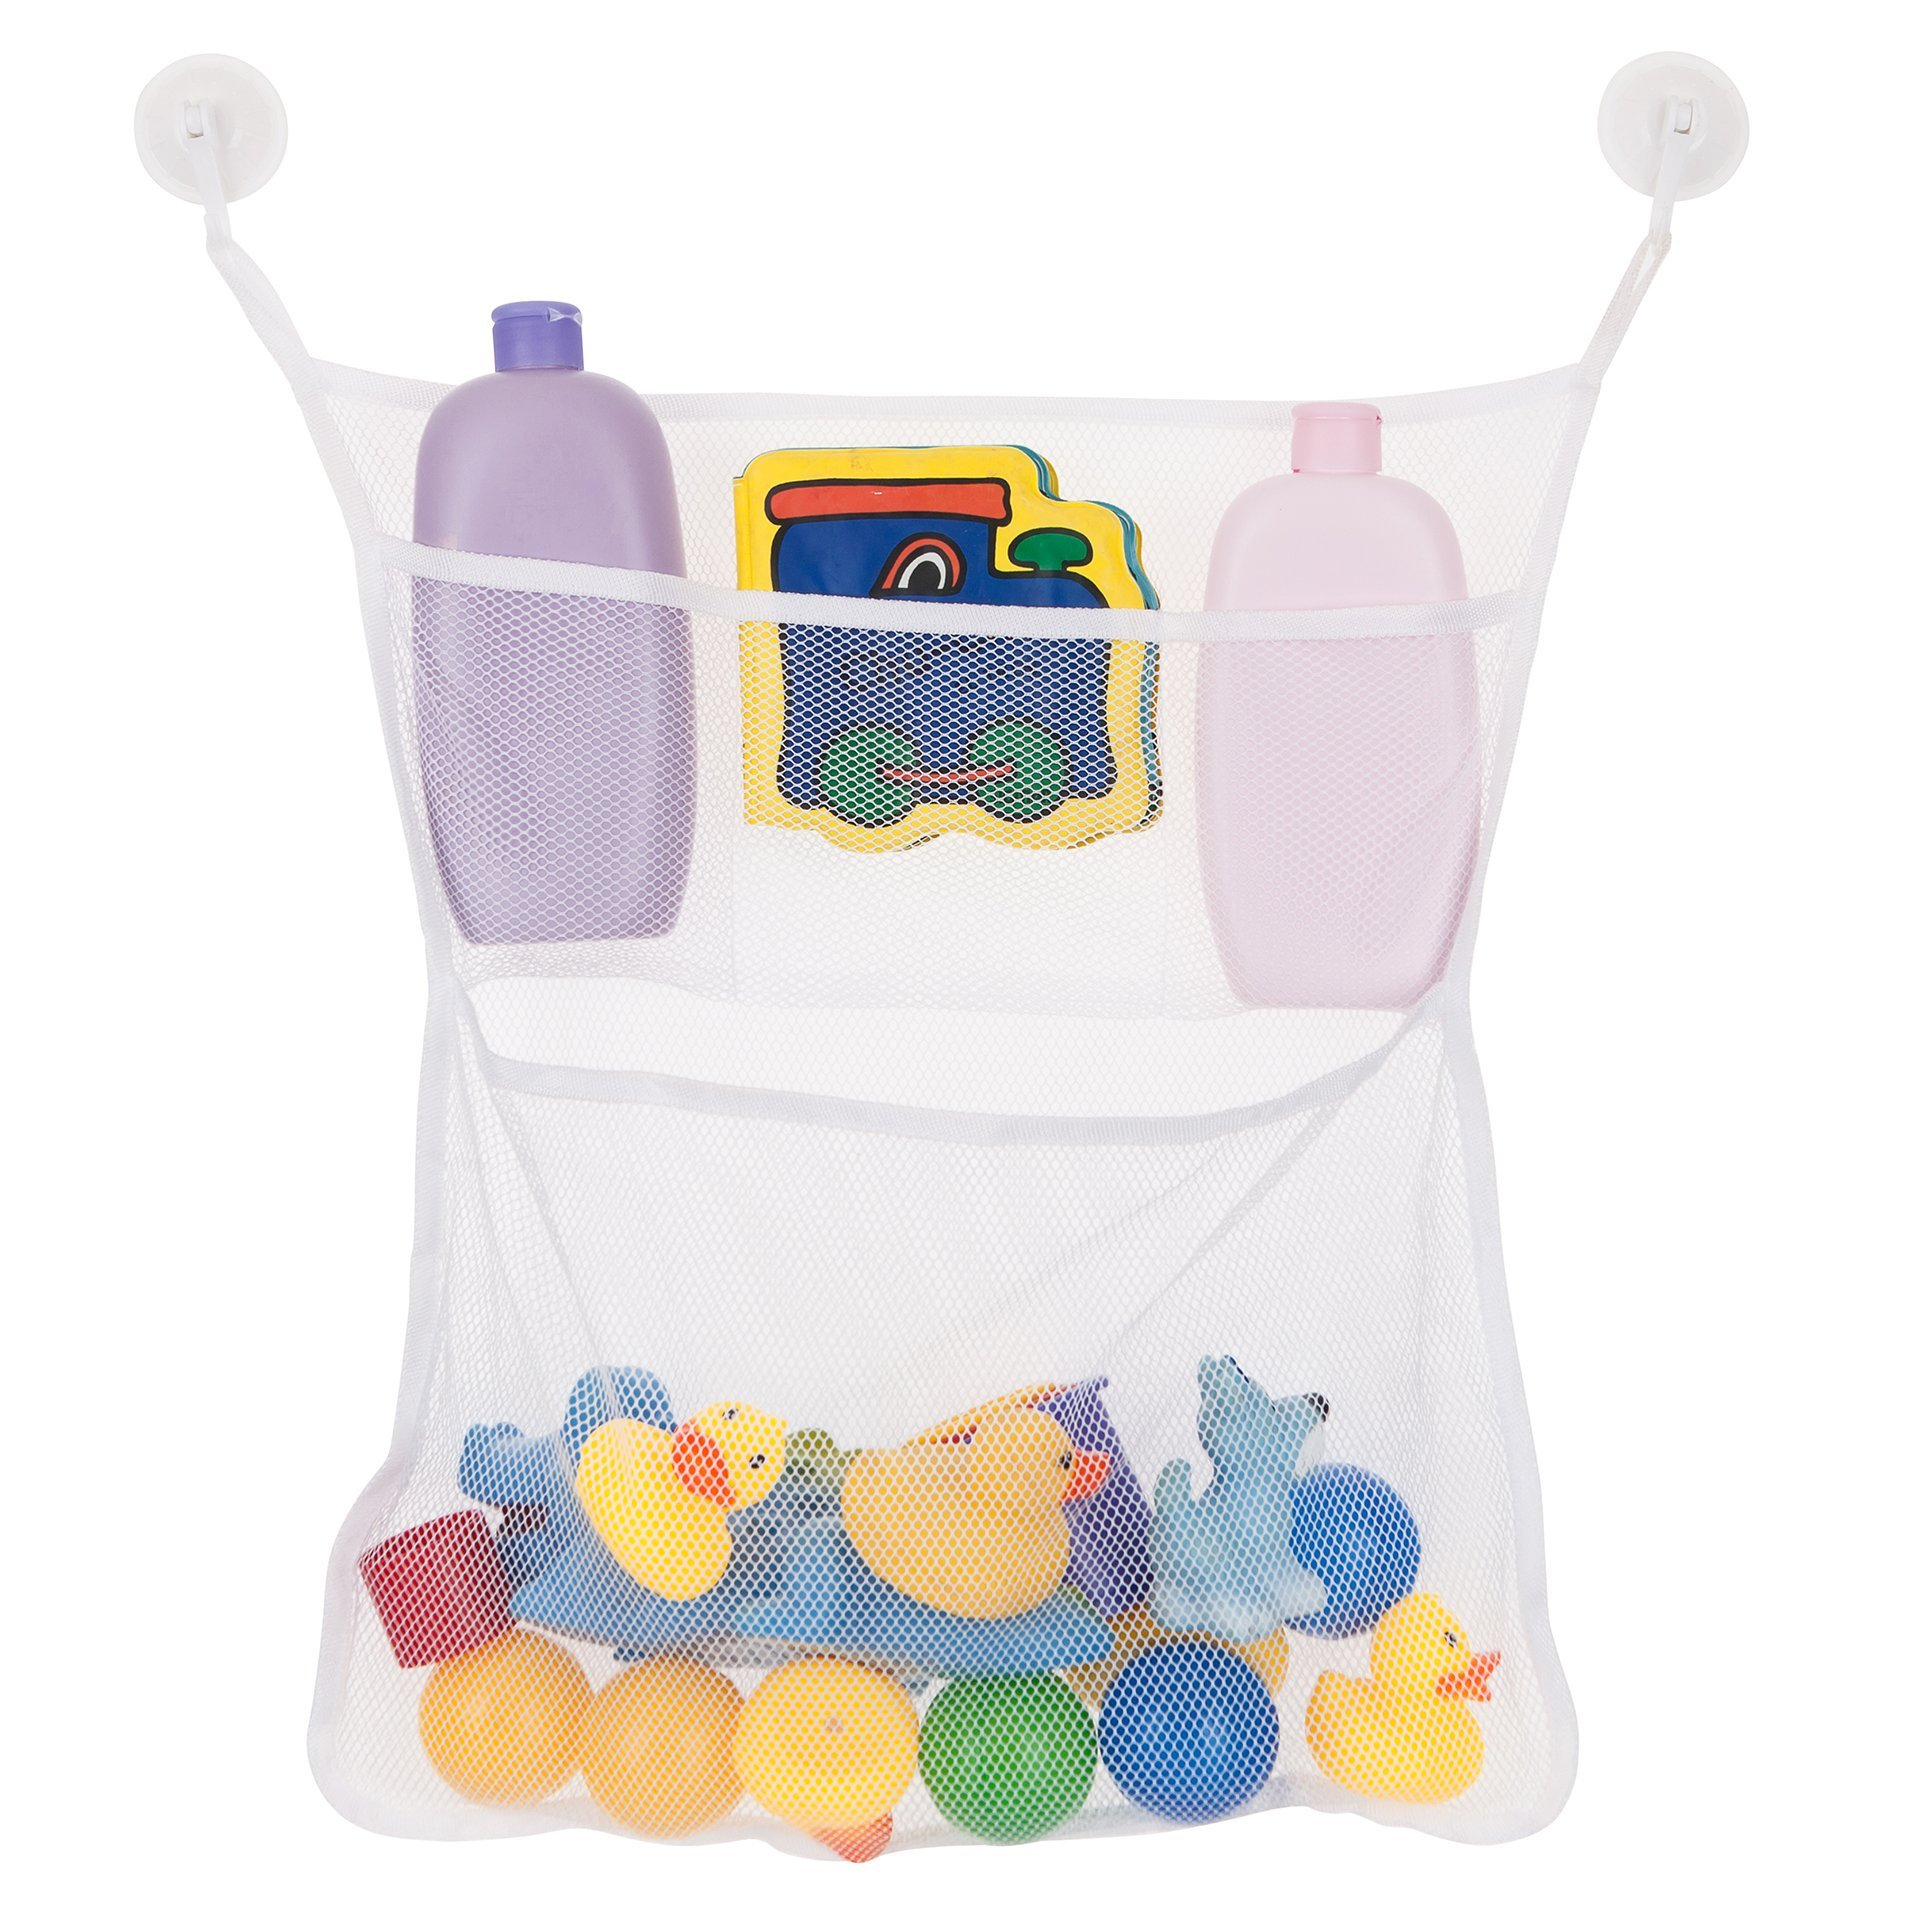 """Bath Toys Organizer net Organize All Your Kids Toys in One Place Large: 14X20"""" The Original Net Toy Organizer Toys Storage Has Never Been Easier Bonus: 2 Additional Suction Cups Included BUY NOW."""